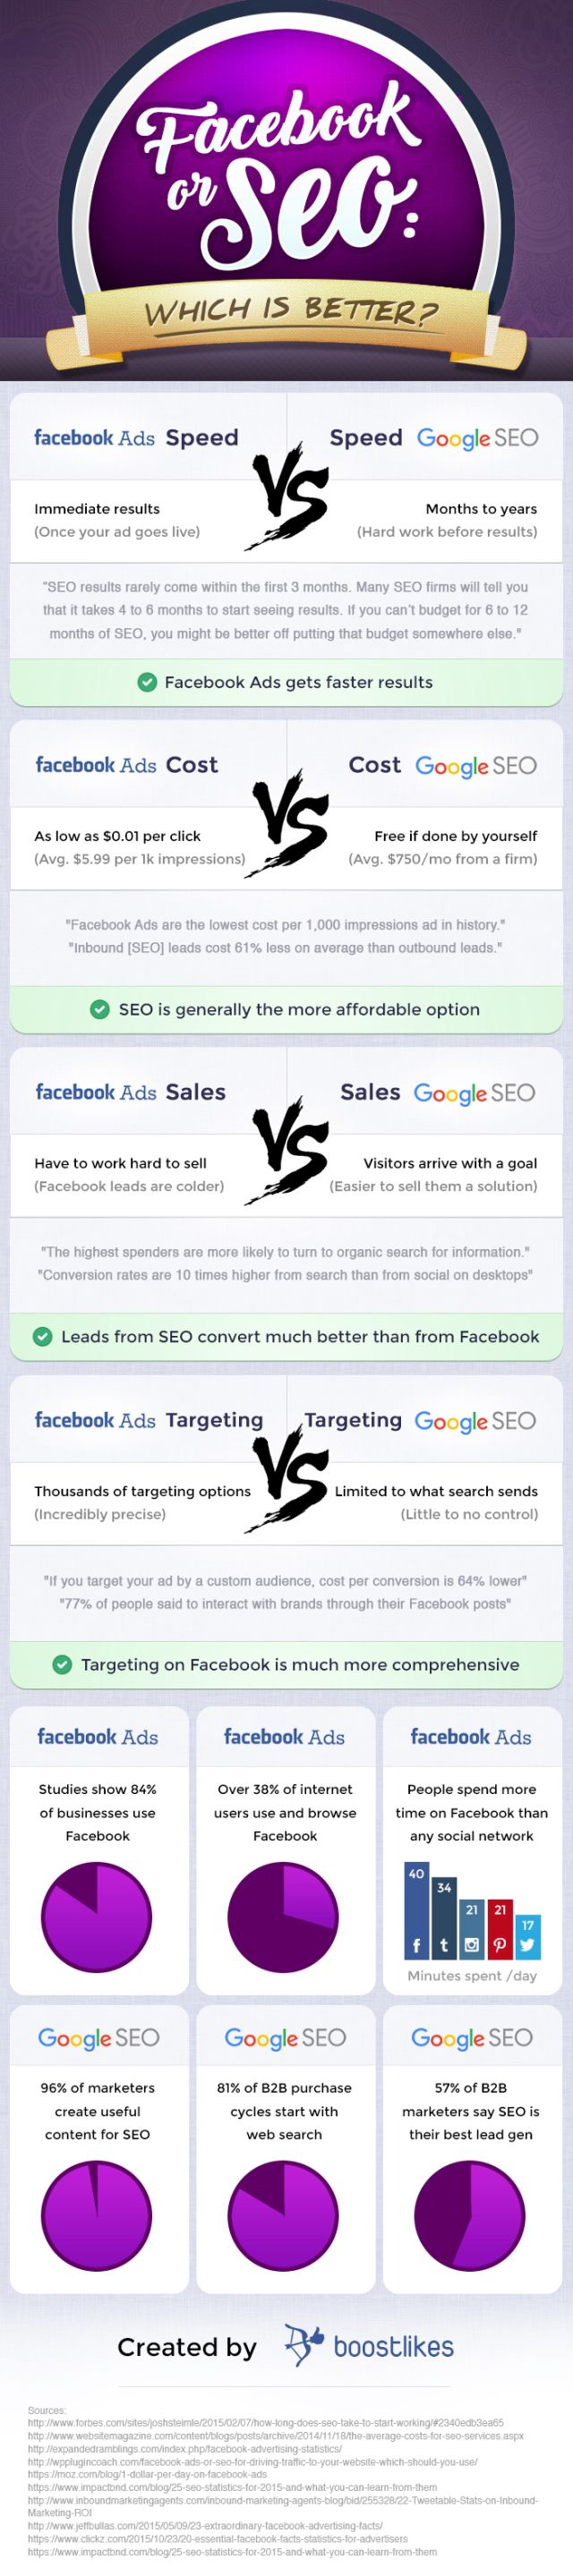 Facebook Ads or SEO: Where should you spend your time & money?